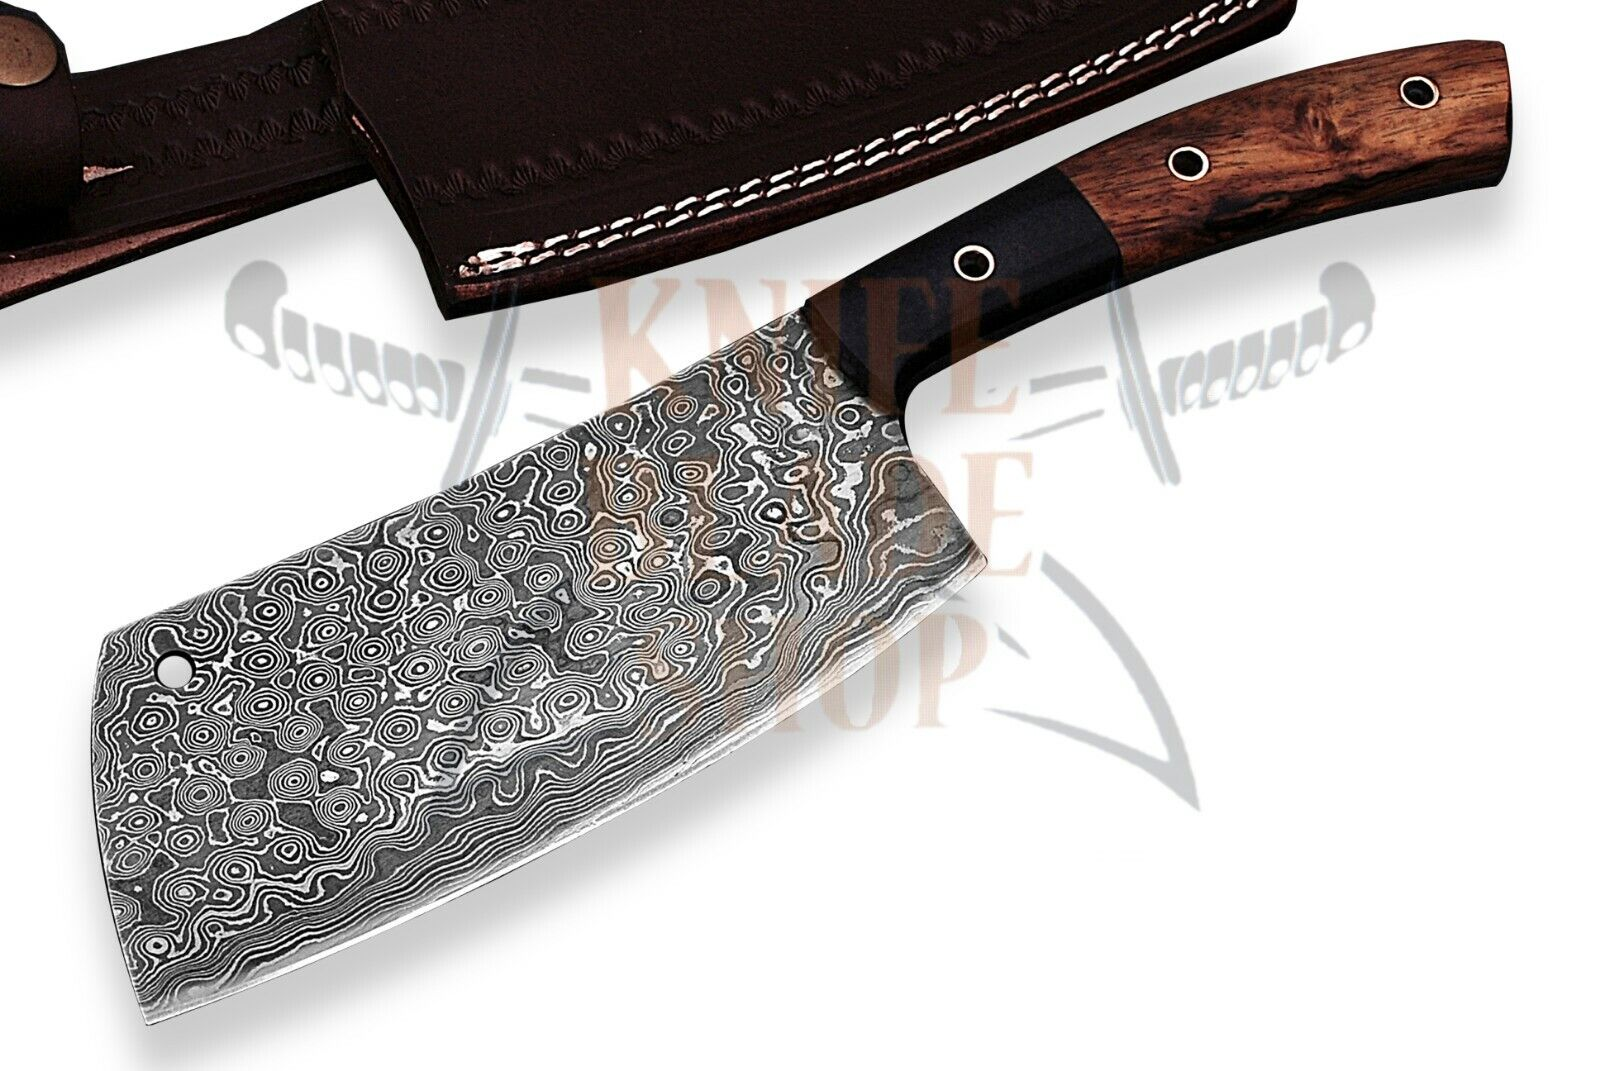 Damascus steel BLADE PROFESSIONAL CLEAVER CHEF'S KNIFE ROSE bois HANDLE